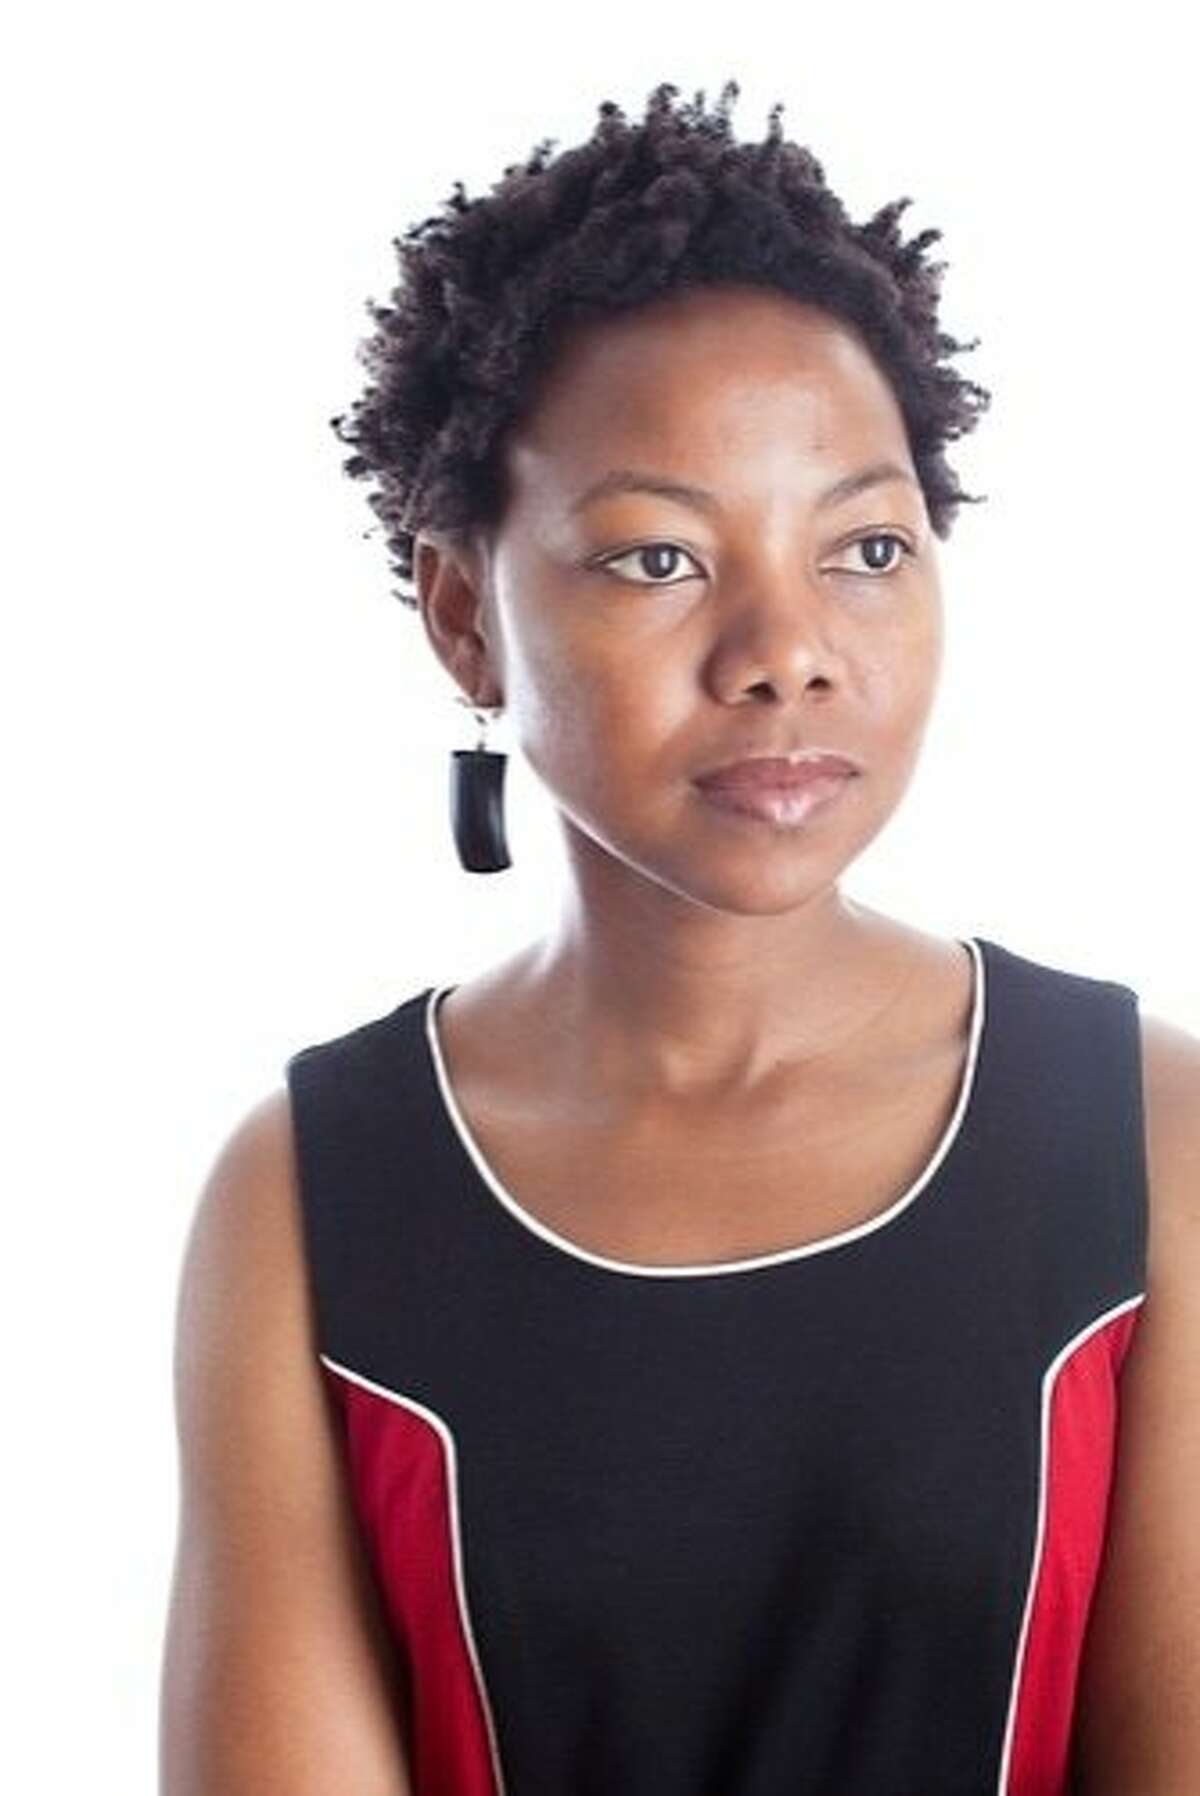 NoViolet Bulawayo NoViolet Bulawayo is a Zimbabwean author. She is currently a Stegner Fellow at Stanford University.